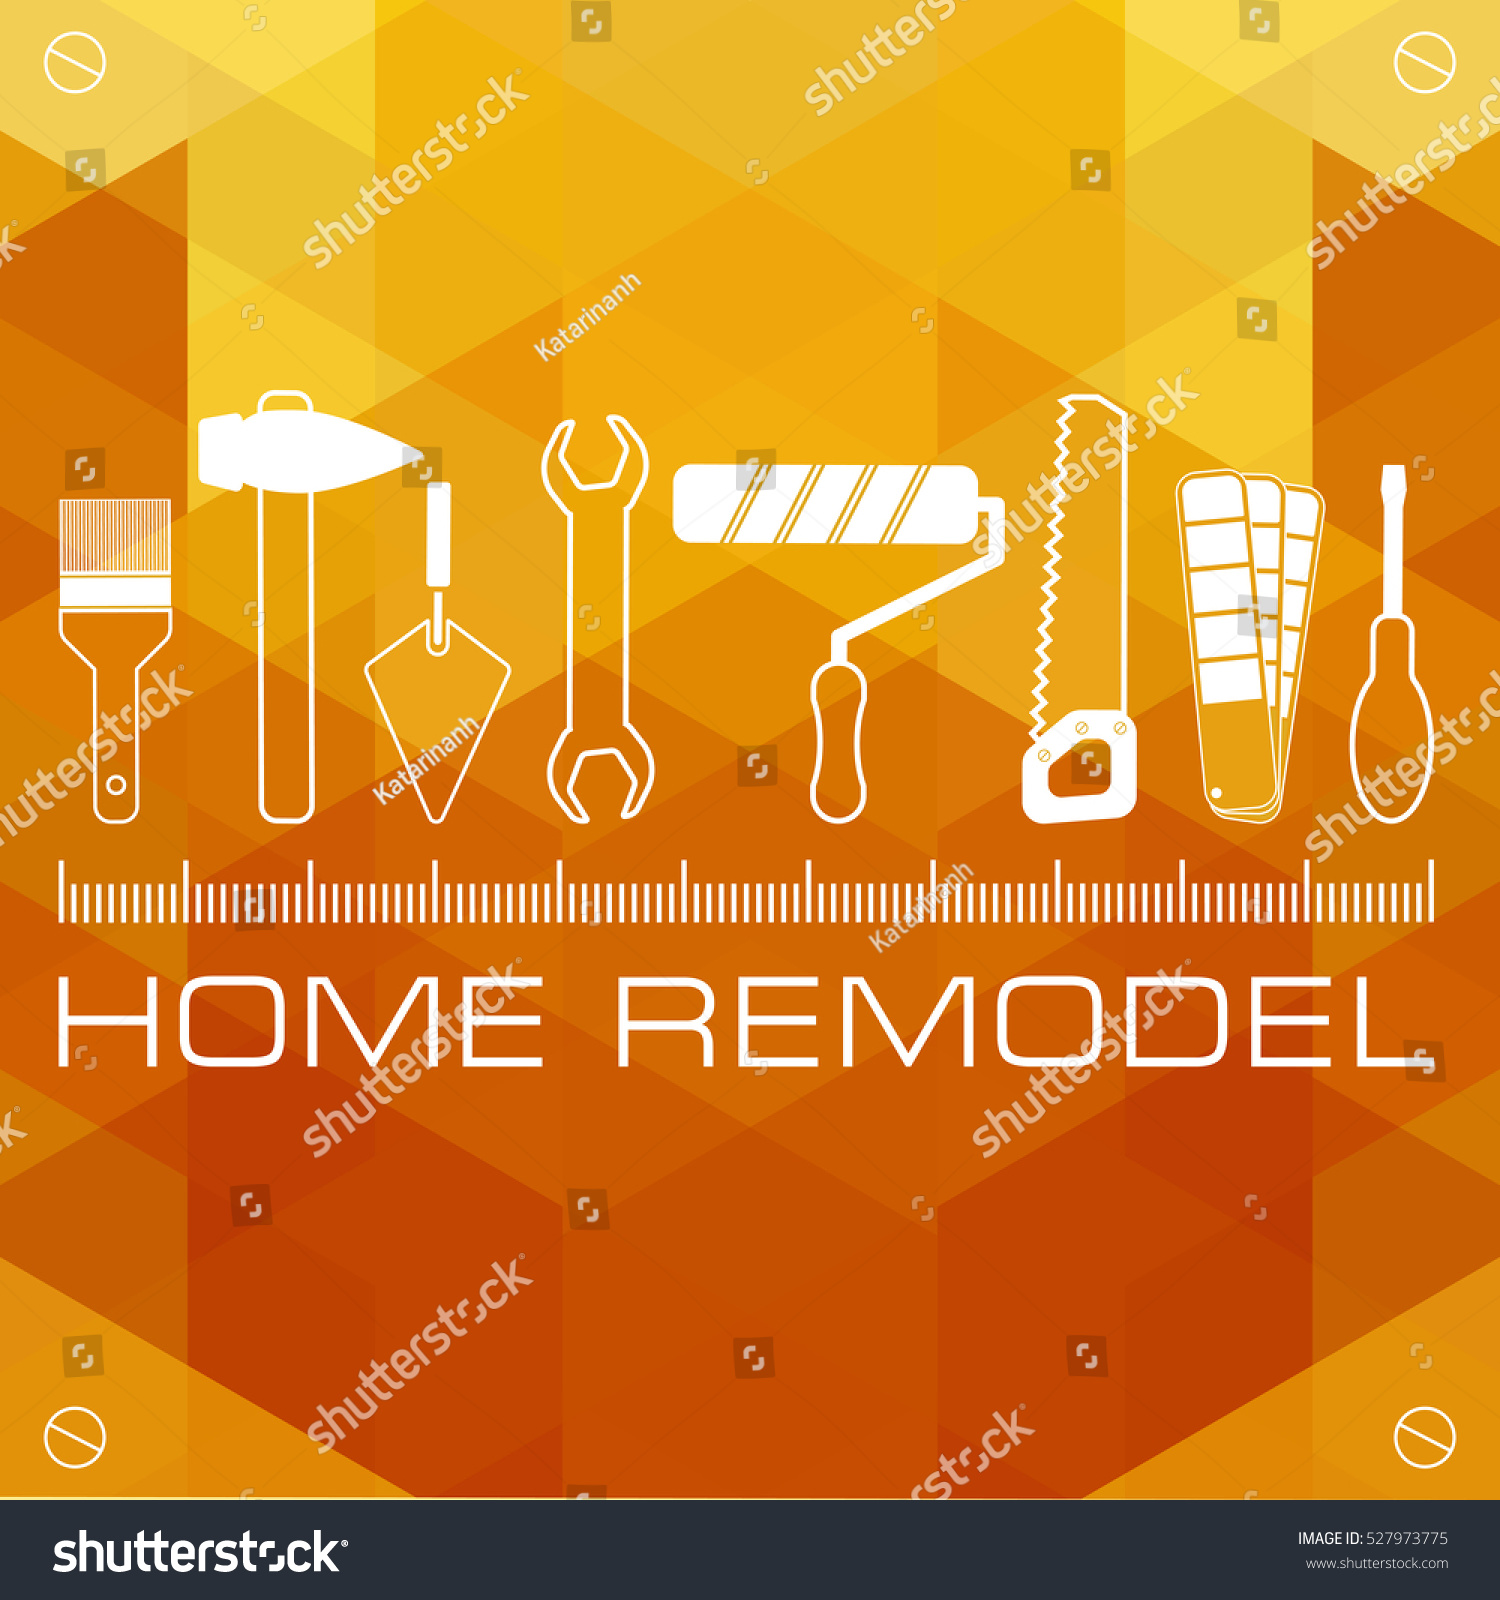 Remodeling Home Home Renovation Technology Concept Stock Vector